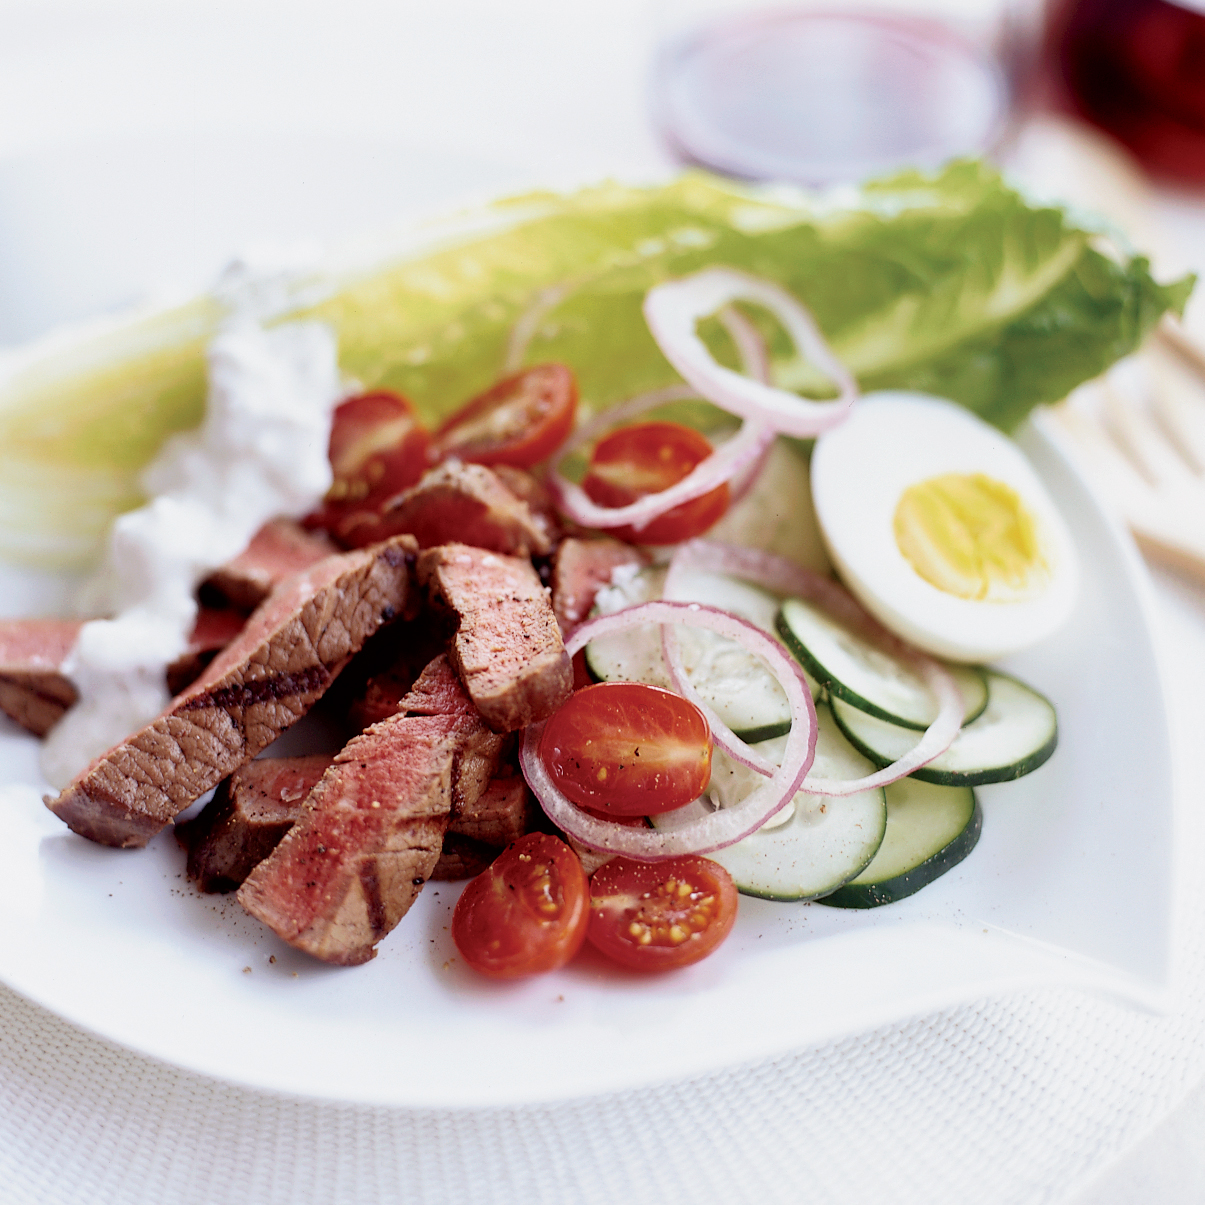 Spicy Steak Salad with Blue Cheese Dressing